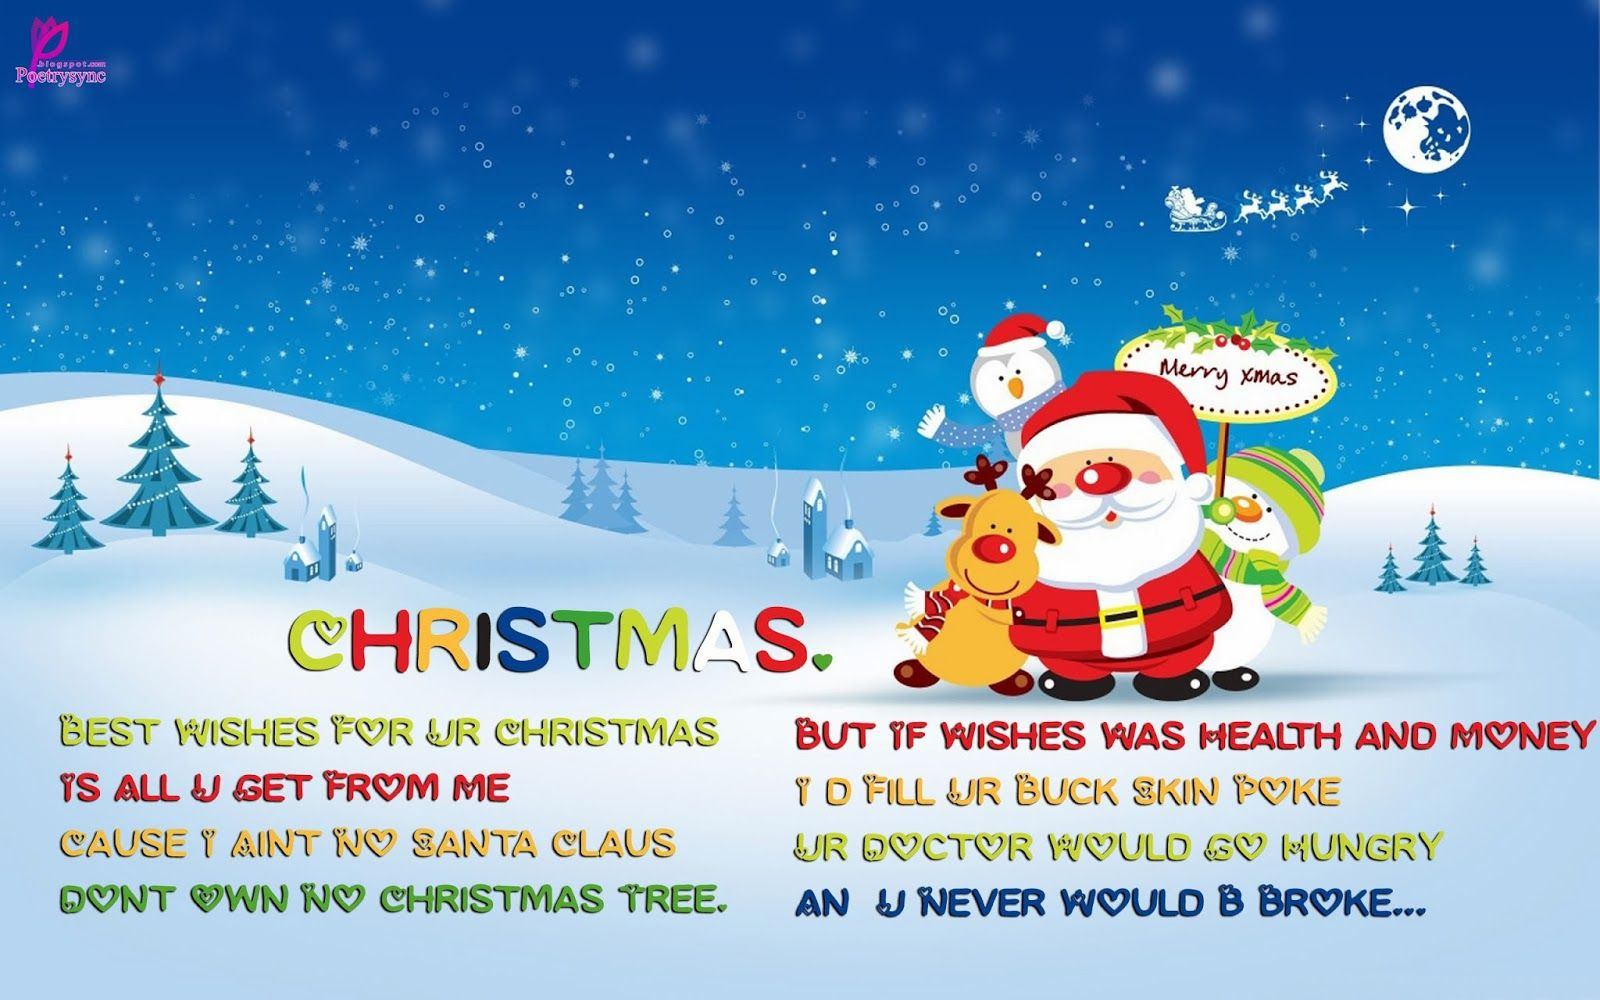 Christmas Season Images Free   Google Search  Christmas Wishes Samples